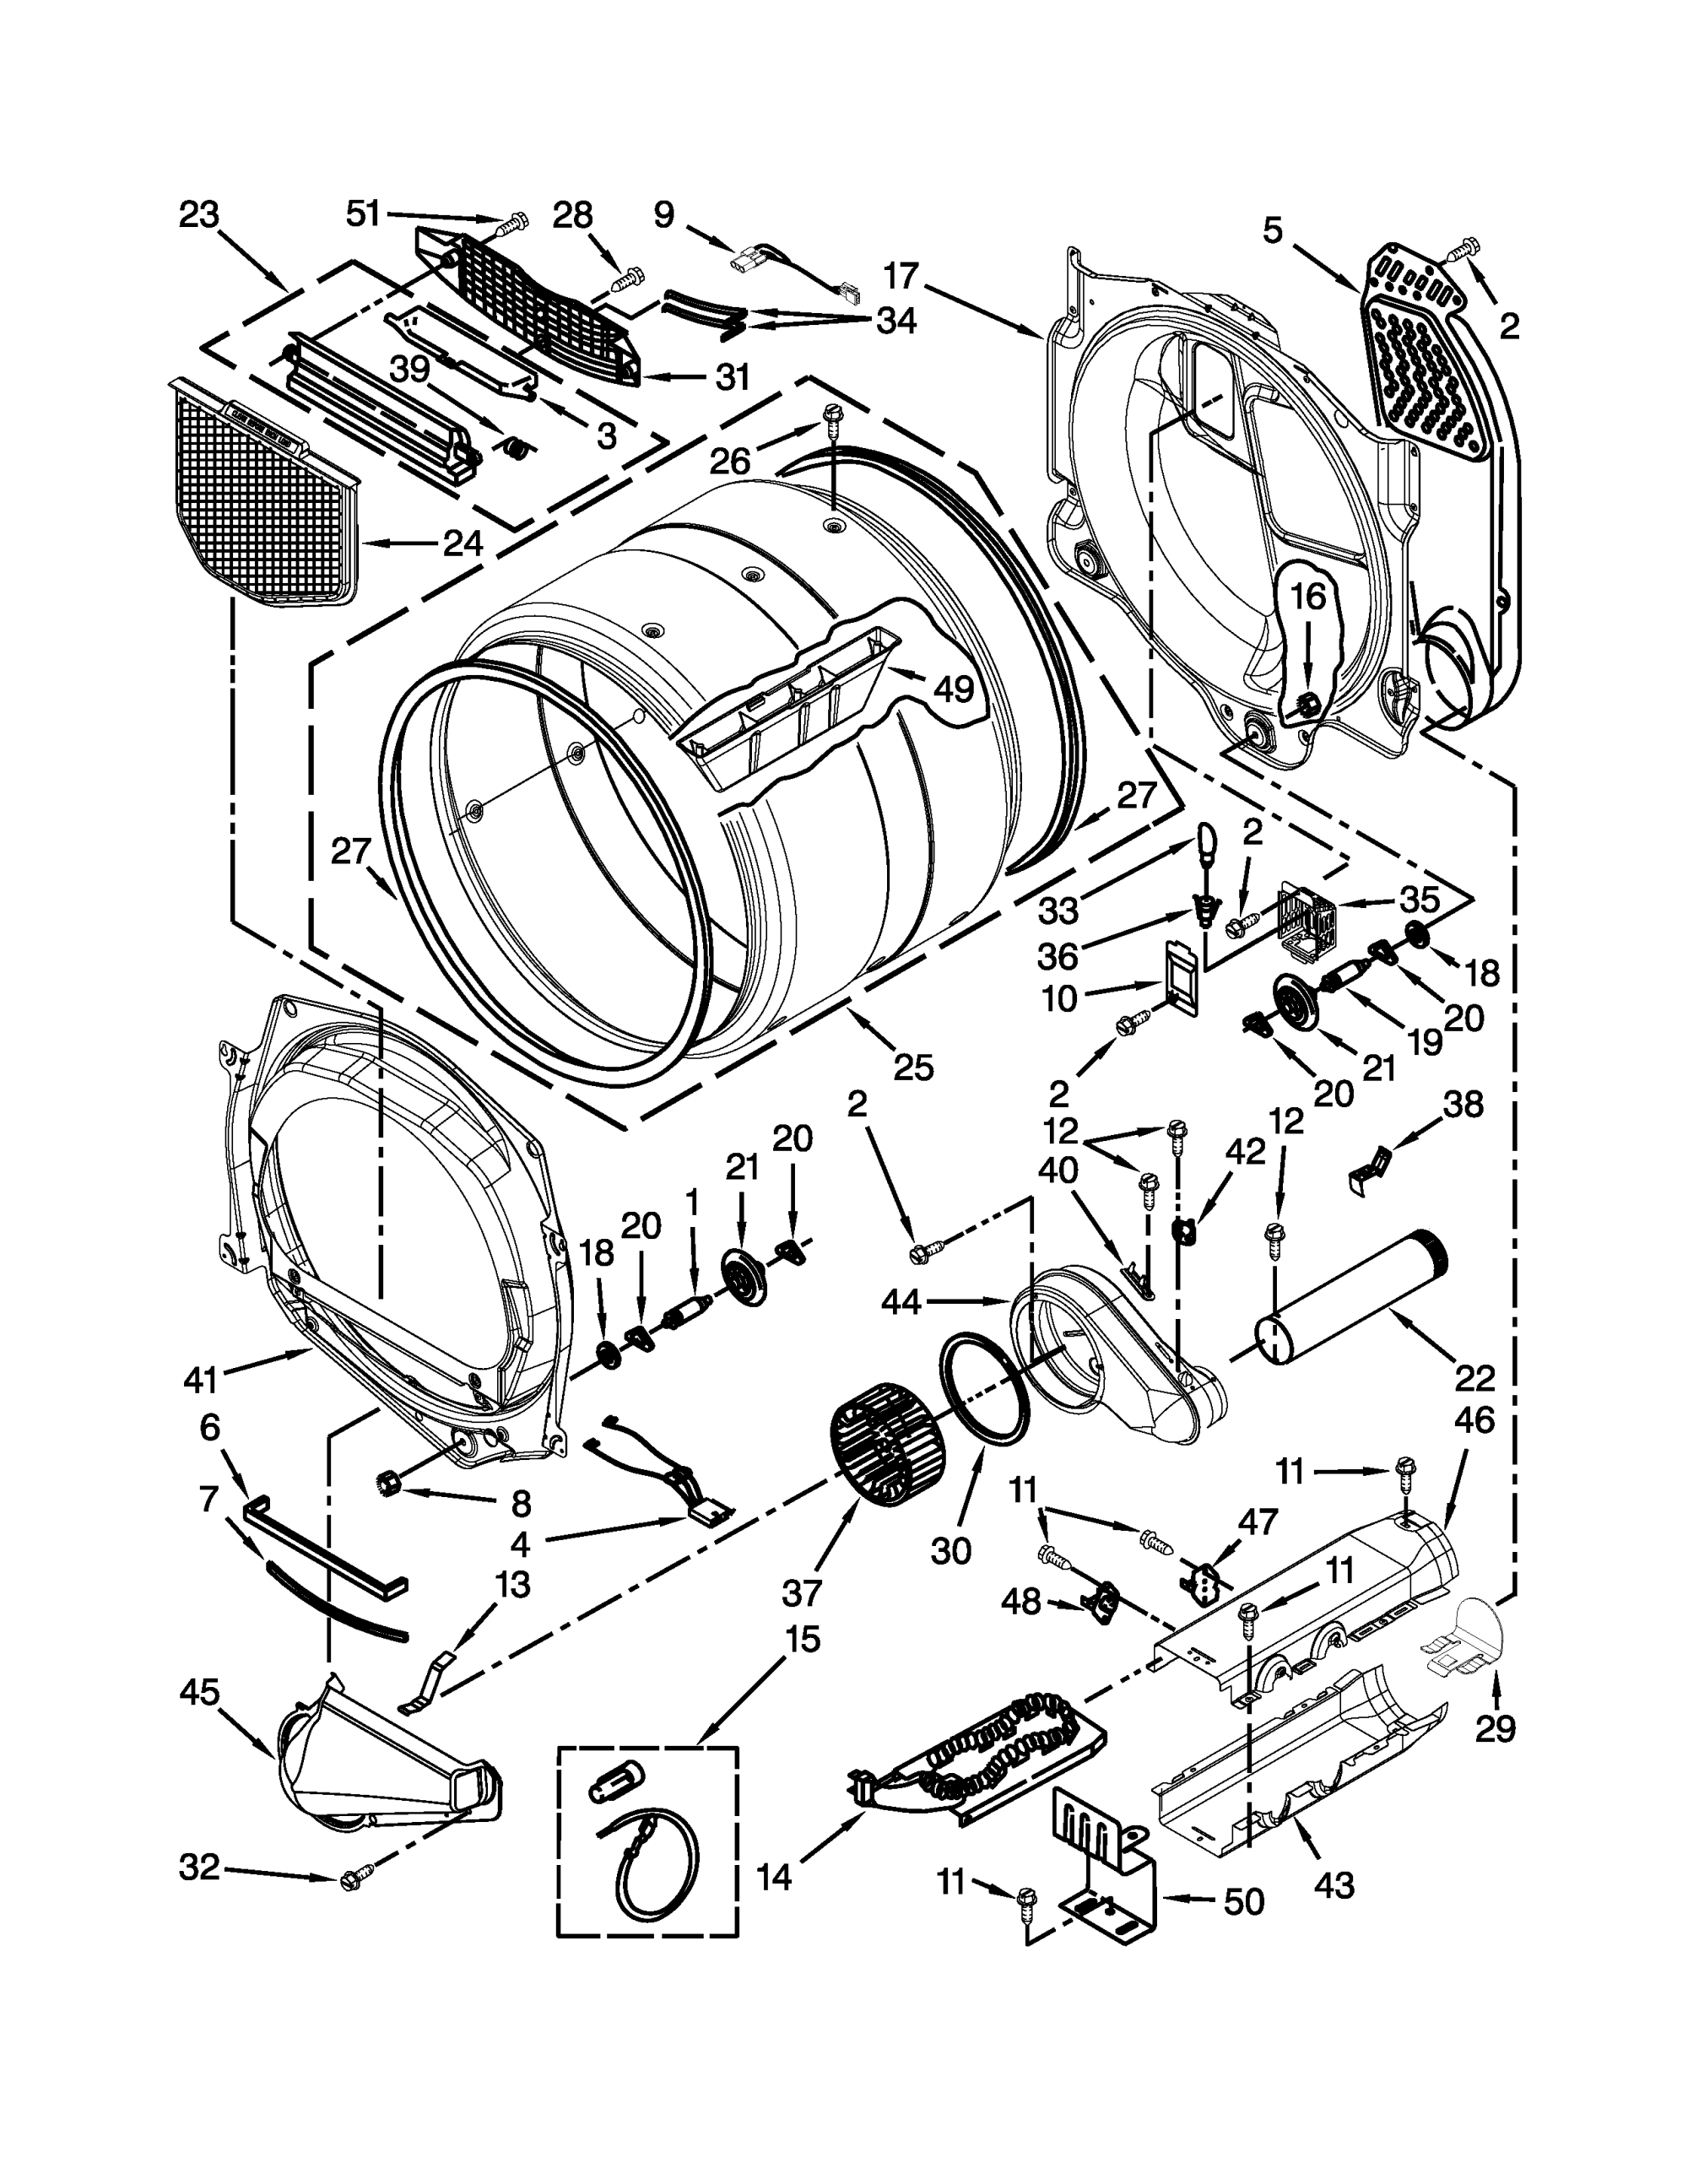 hight resolution of machine parts diagram besides whirlpool cabrio dryer parts diagram whirlpool duet dryer heating element wiring diagram